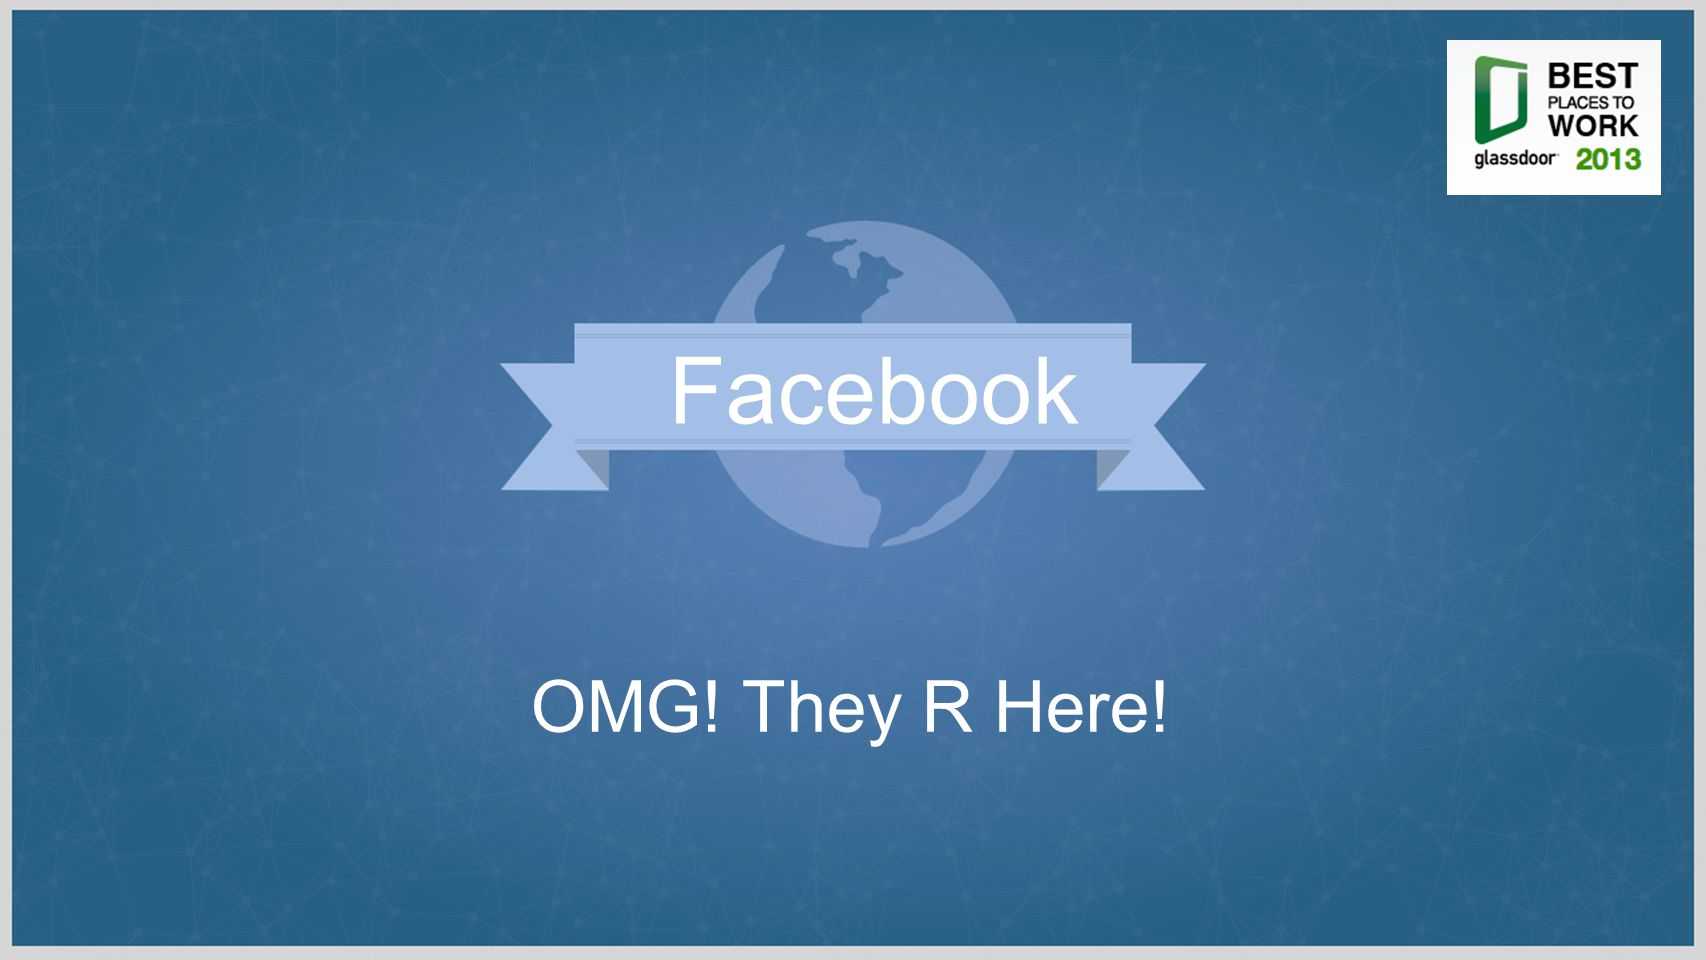 OMG! They R Here! Facebook